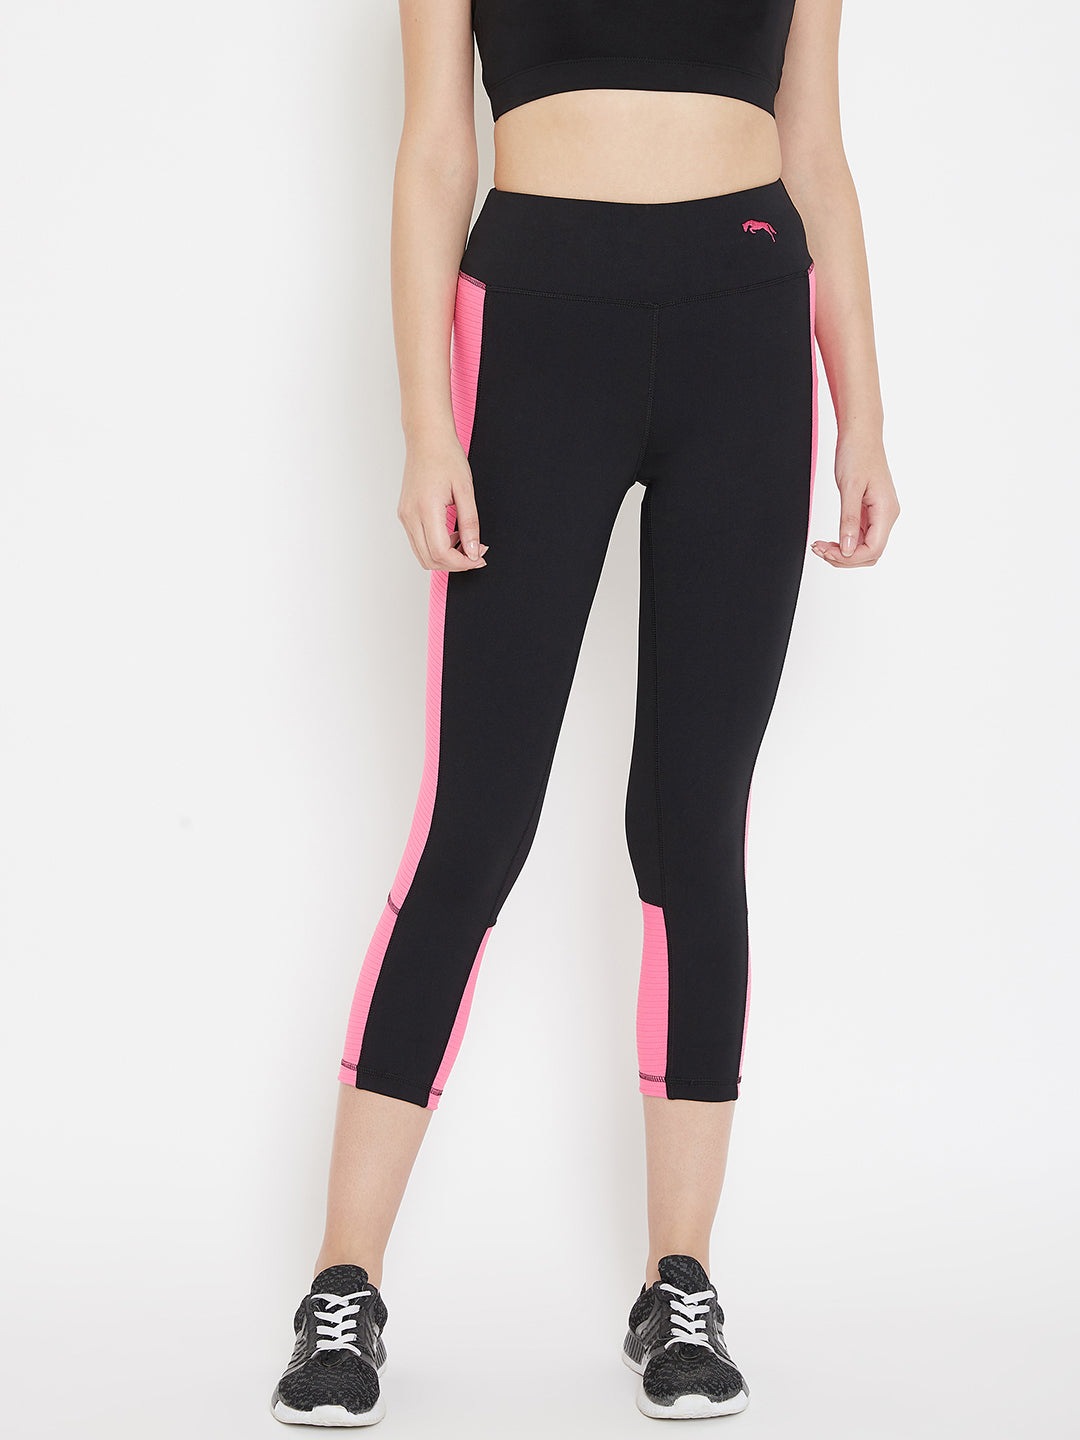 JUMP USA Women Black & Pink Active Wear Tights